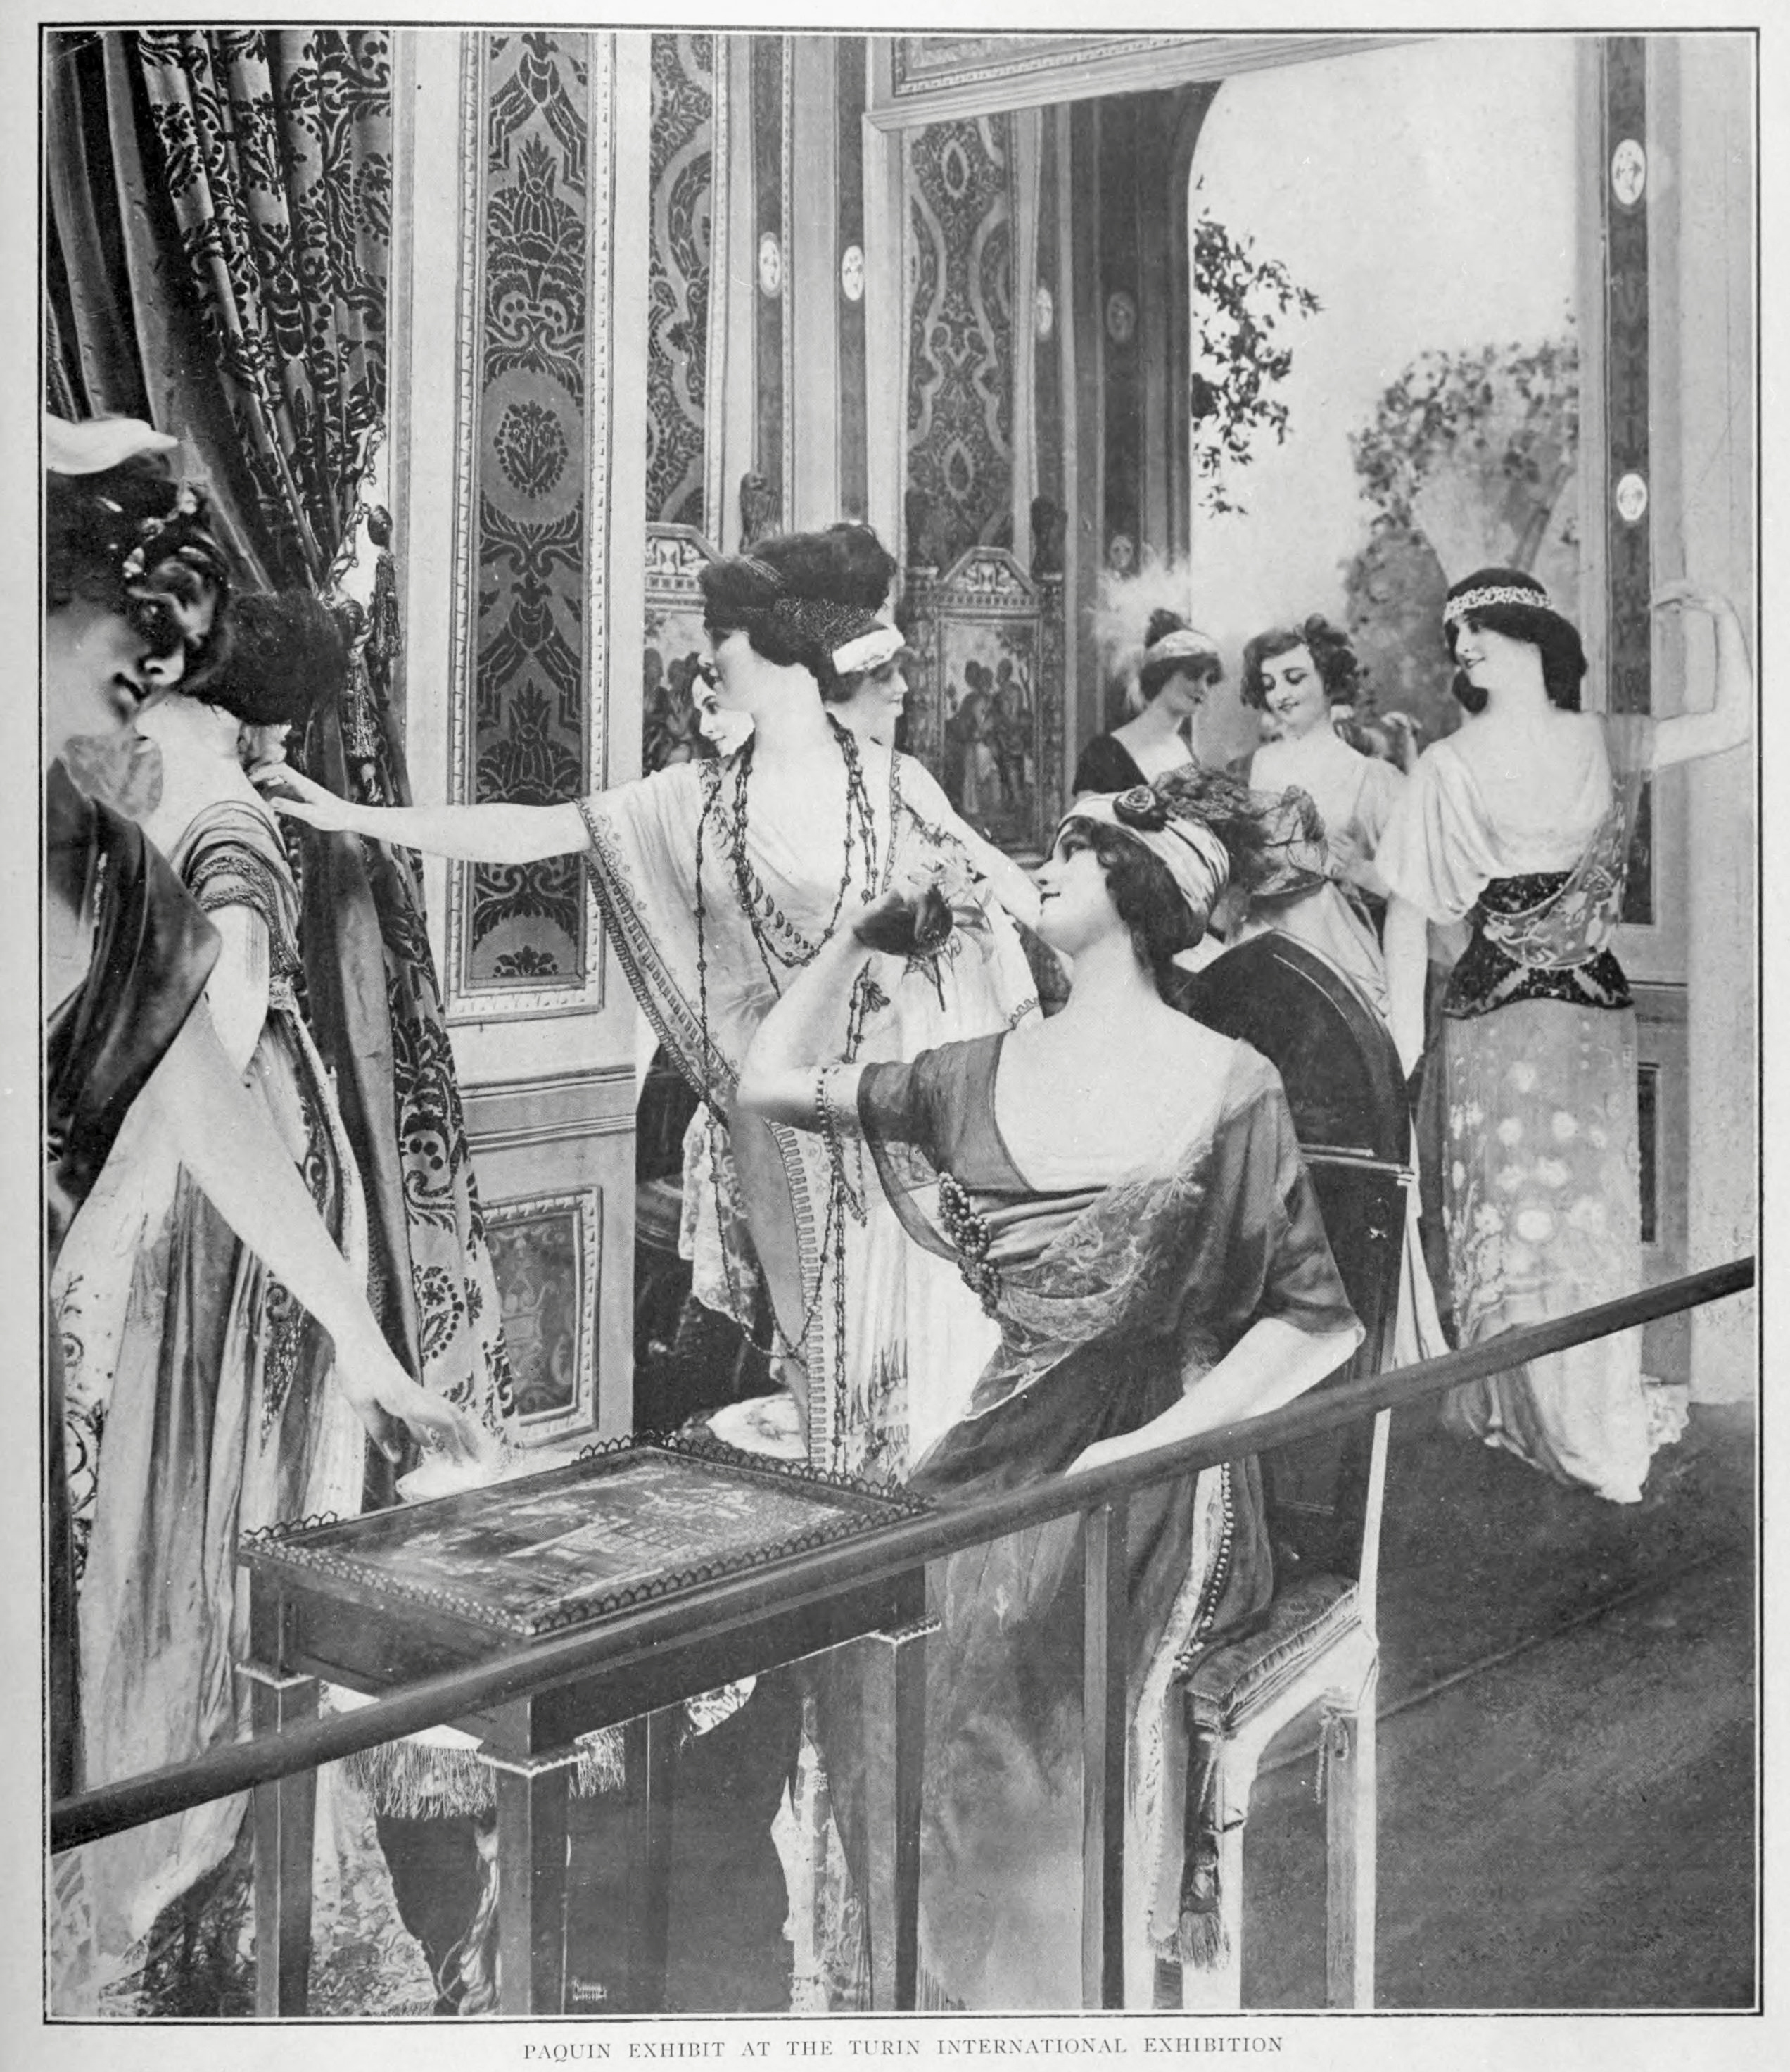 Wax figures at the Turin International Exhibition of 1911. Image via CTG publishing.